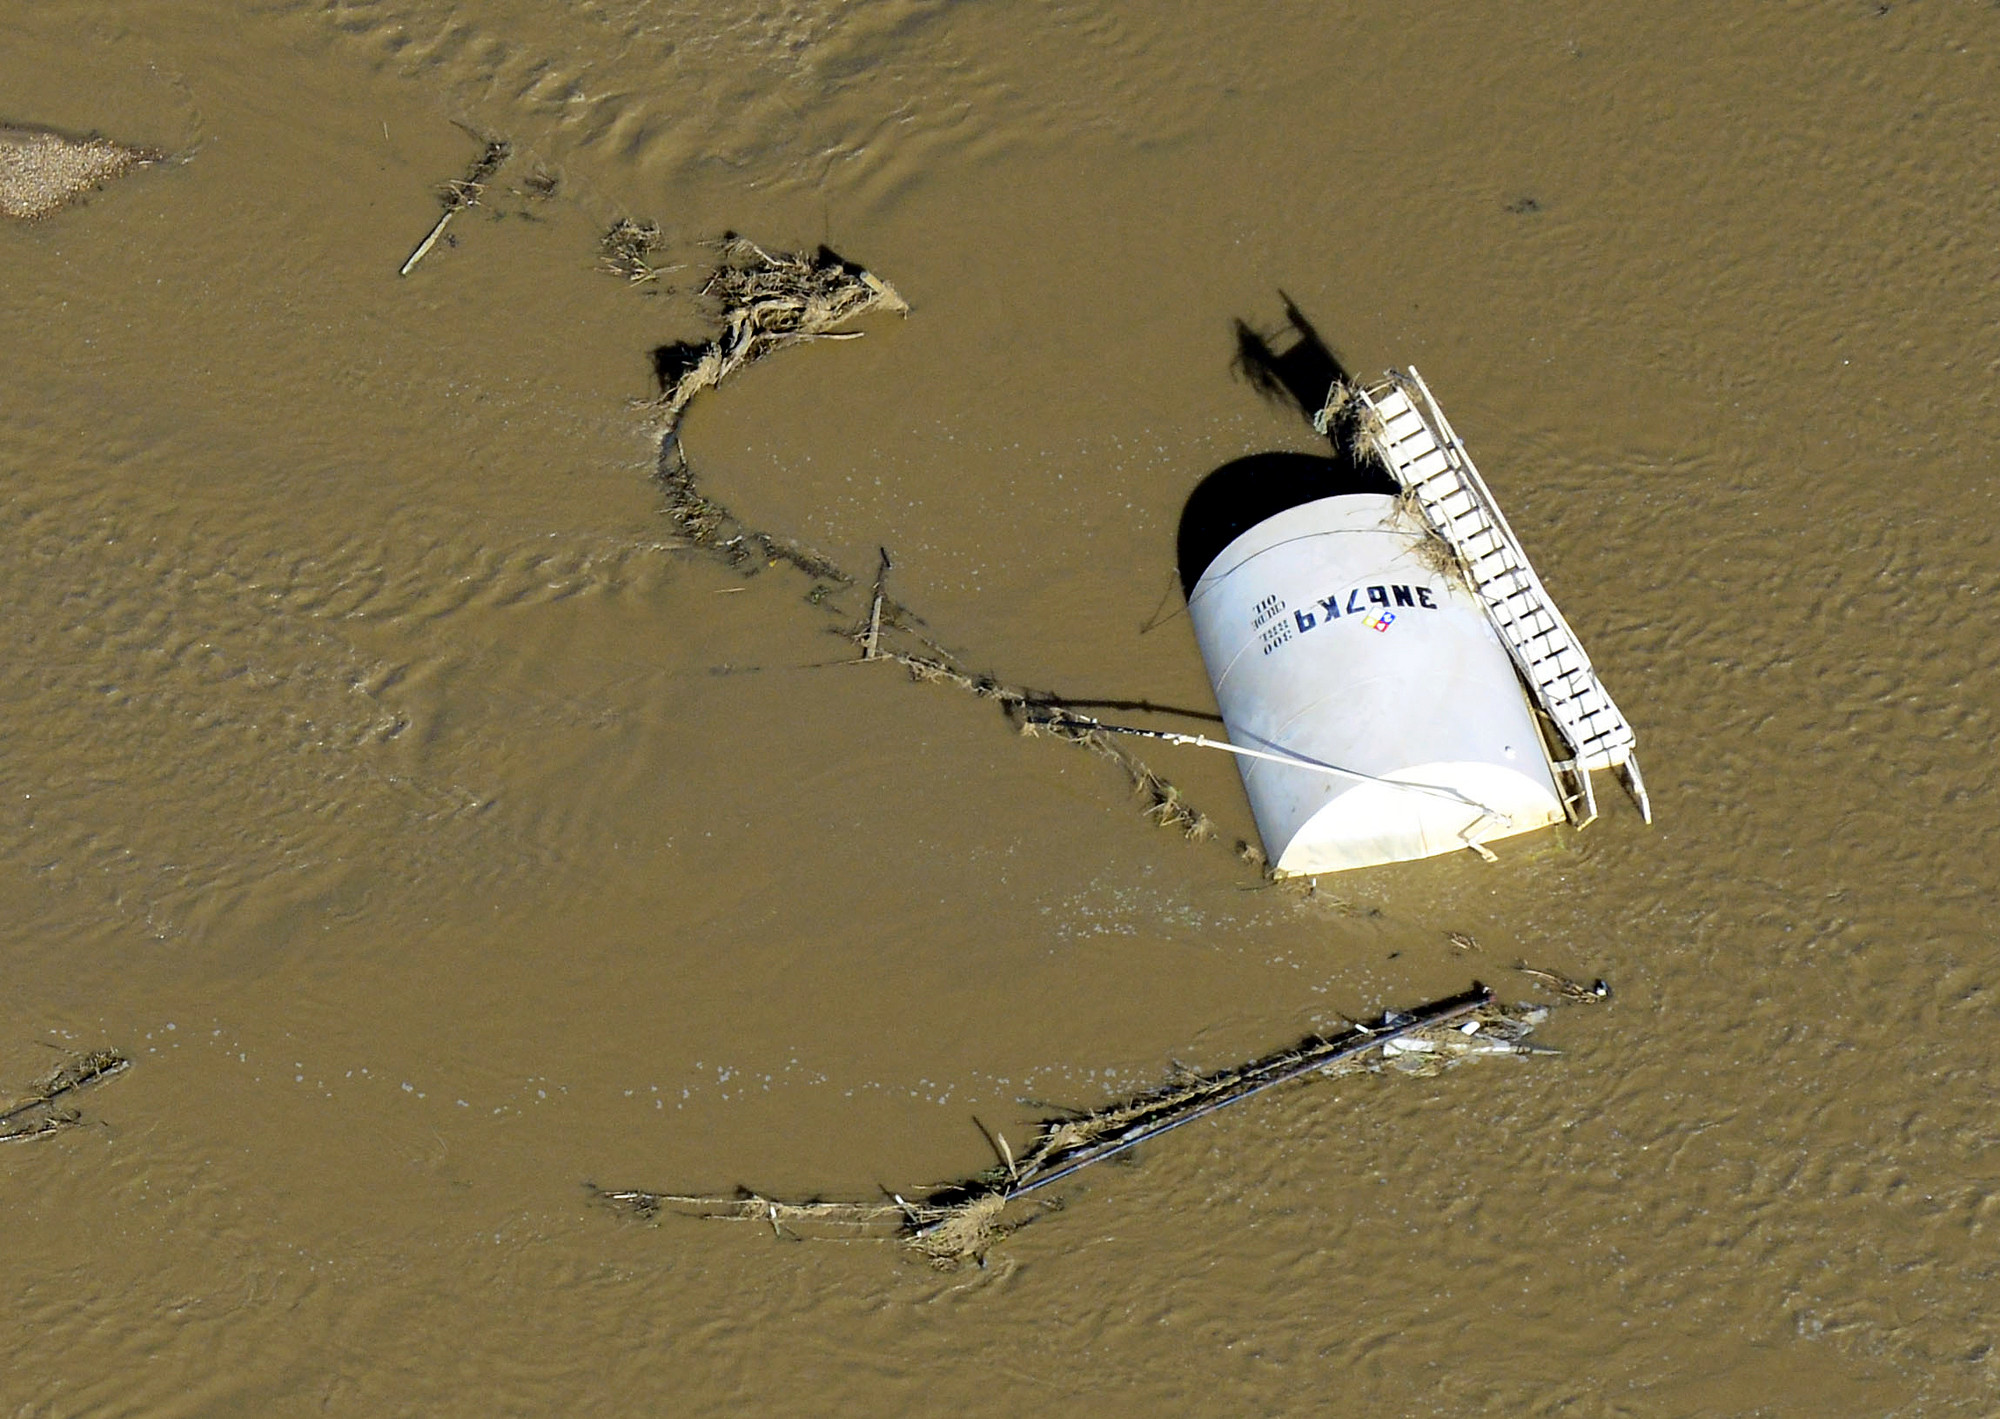 Colorado Flooding OIL AND GAS